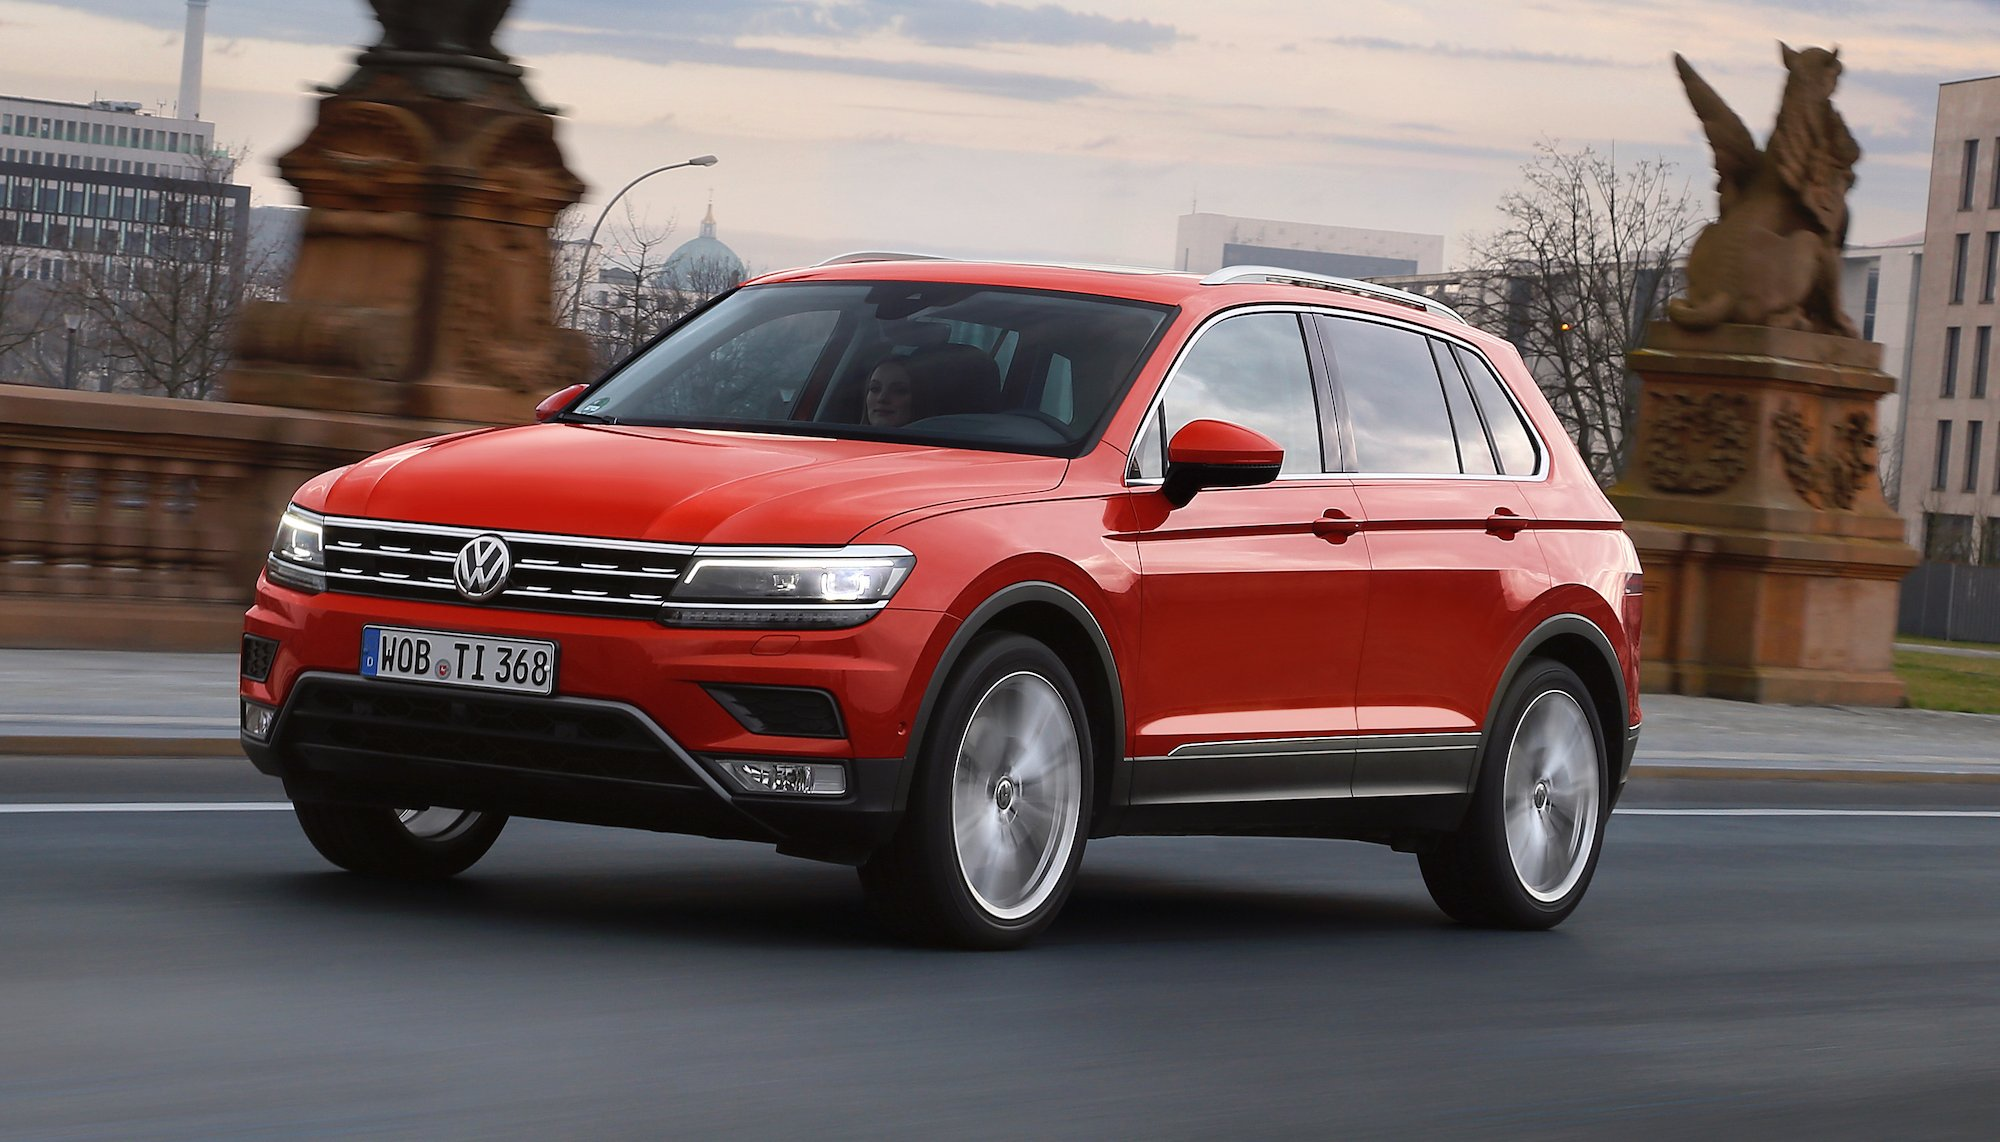 2016 volkswagen tiguan review photos caradvice. Black Bedroom Furniture Sets. Home Design Ideas